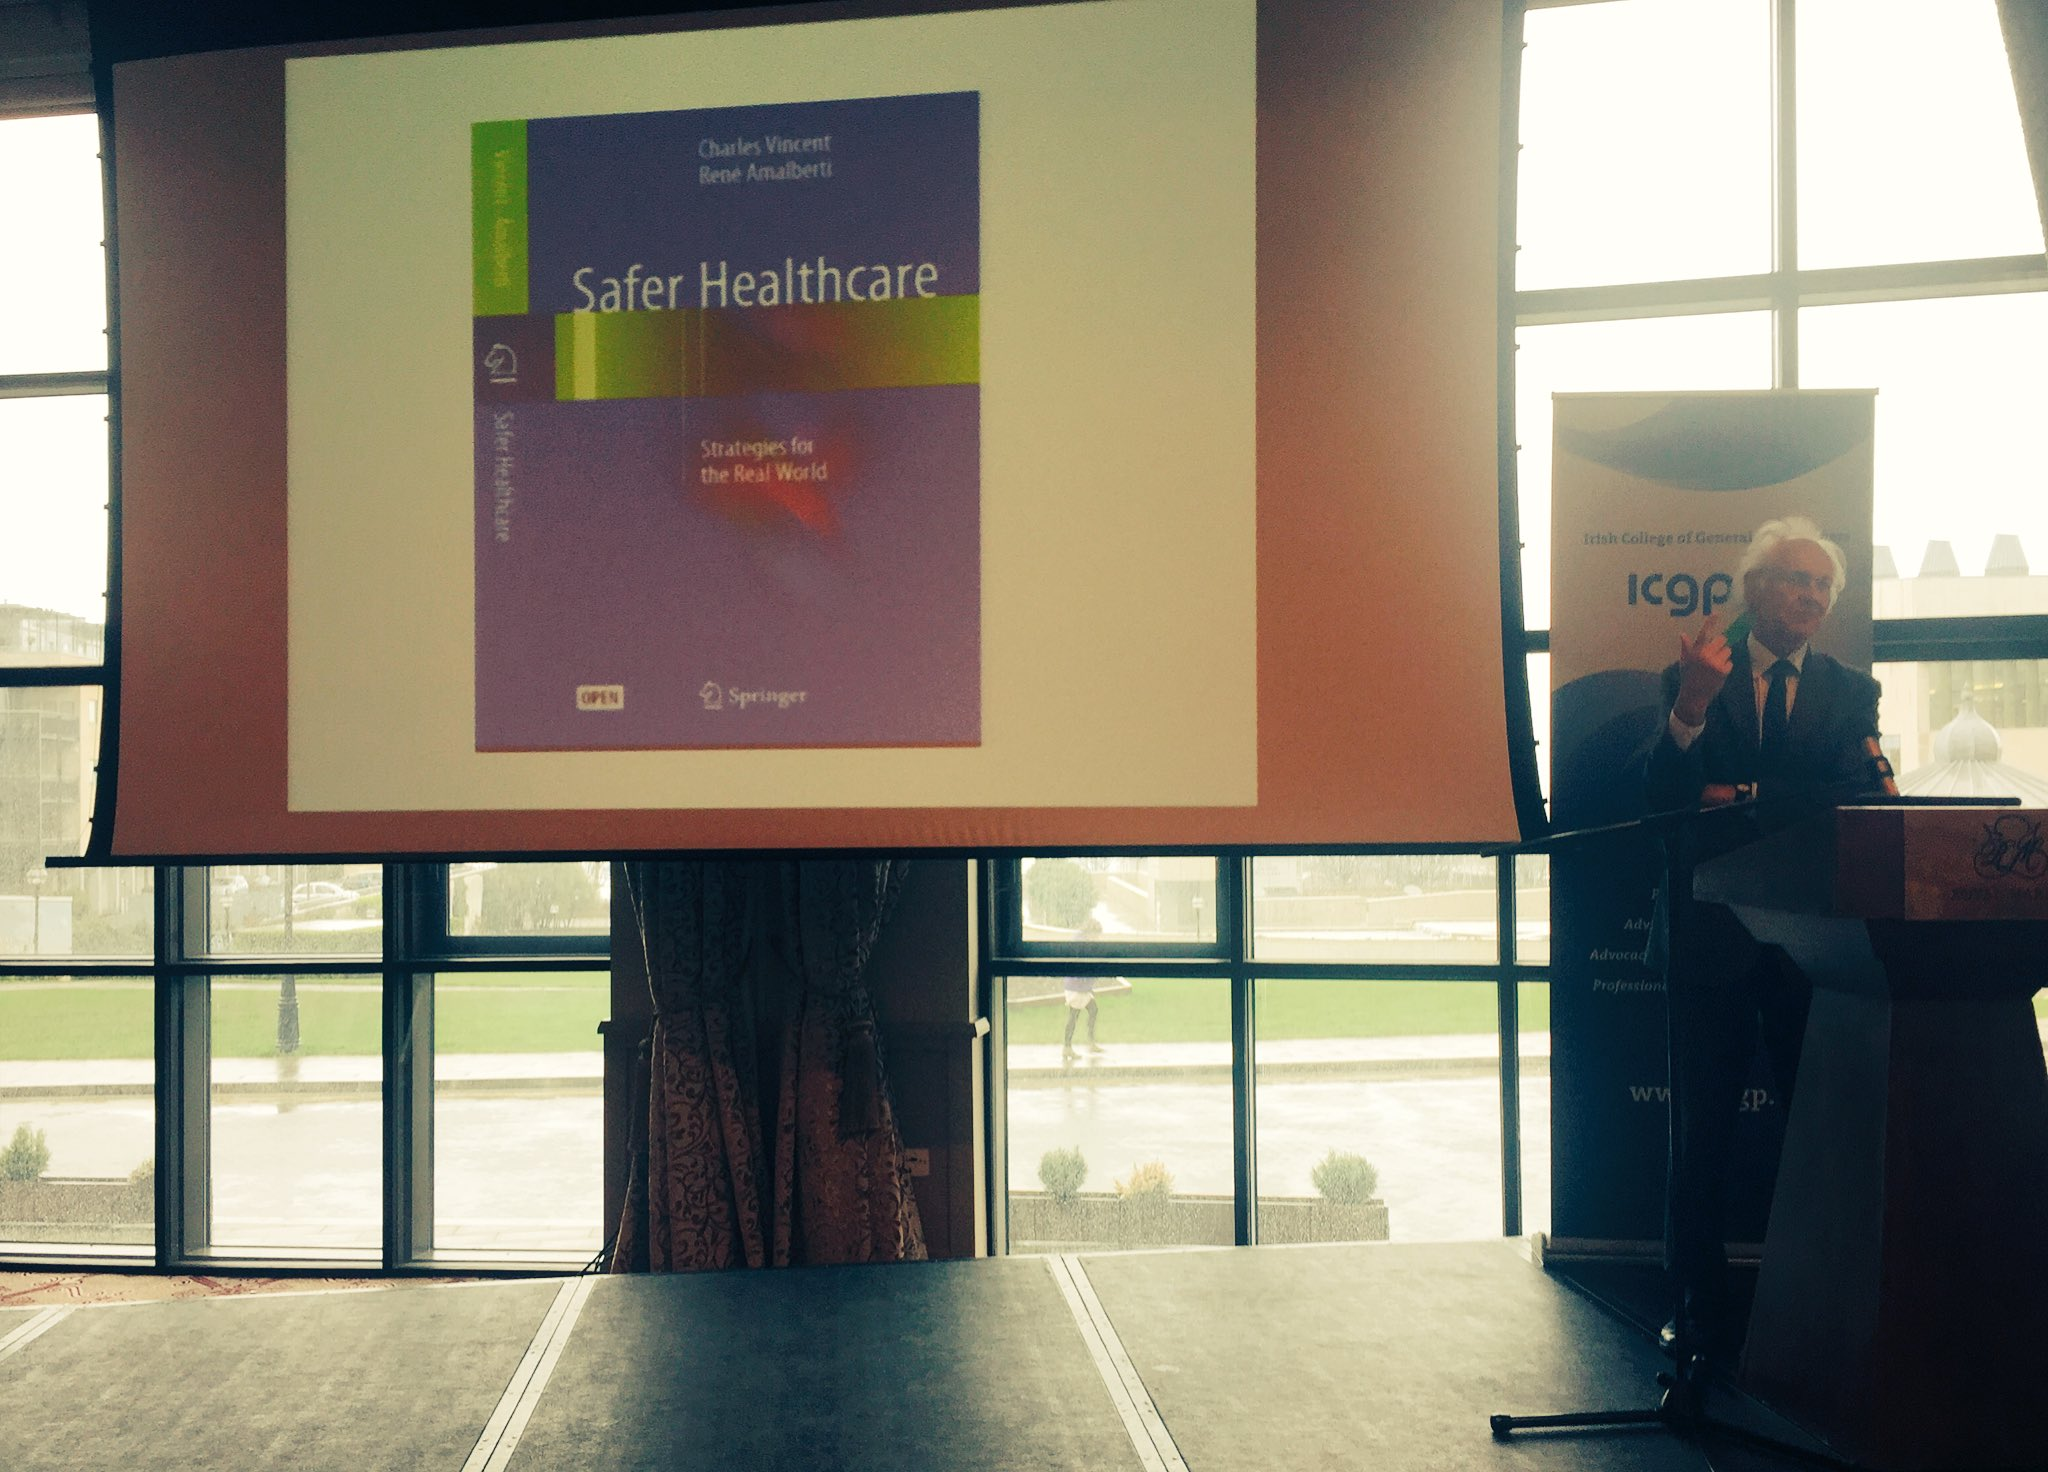 """#EQUIPDublin2017 Charles Vincent keynote address: Safer #healthcare: Safer Strategies for the RealWorld-""""#safety is a moving target"""" https://t.co/KMPShUjqKI"""